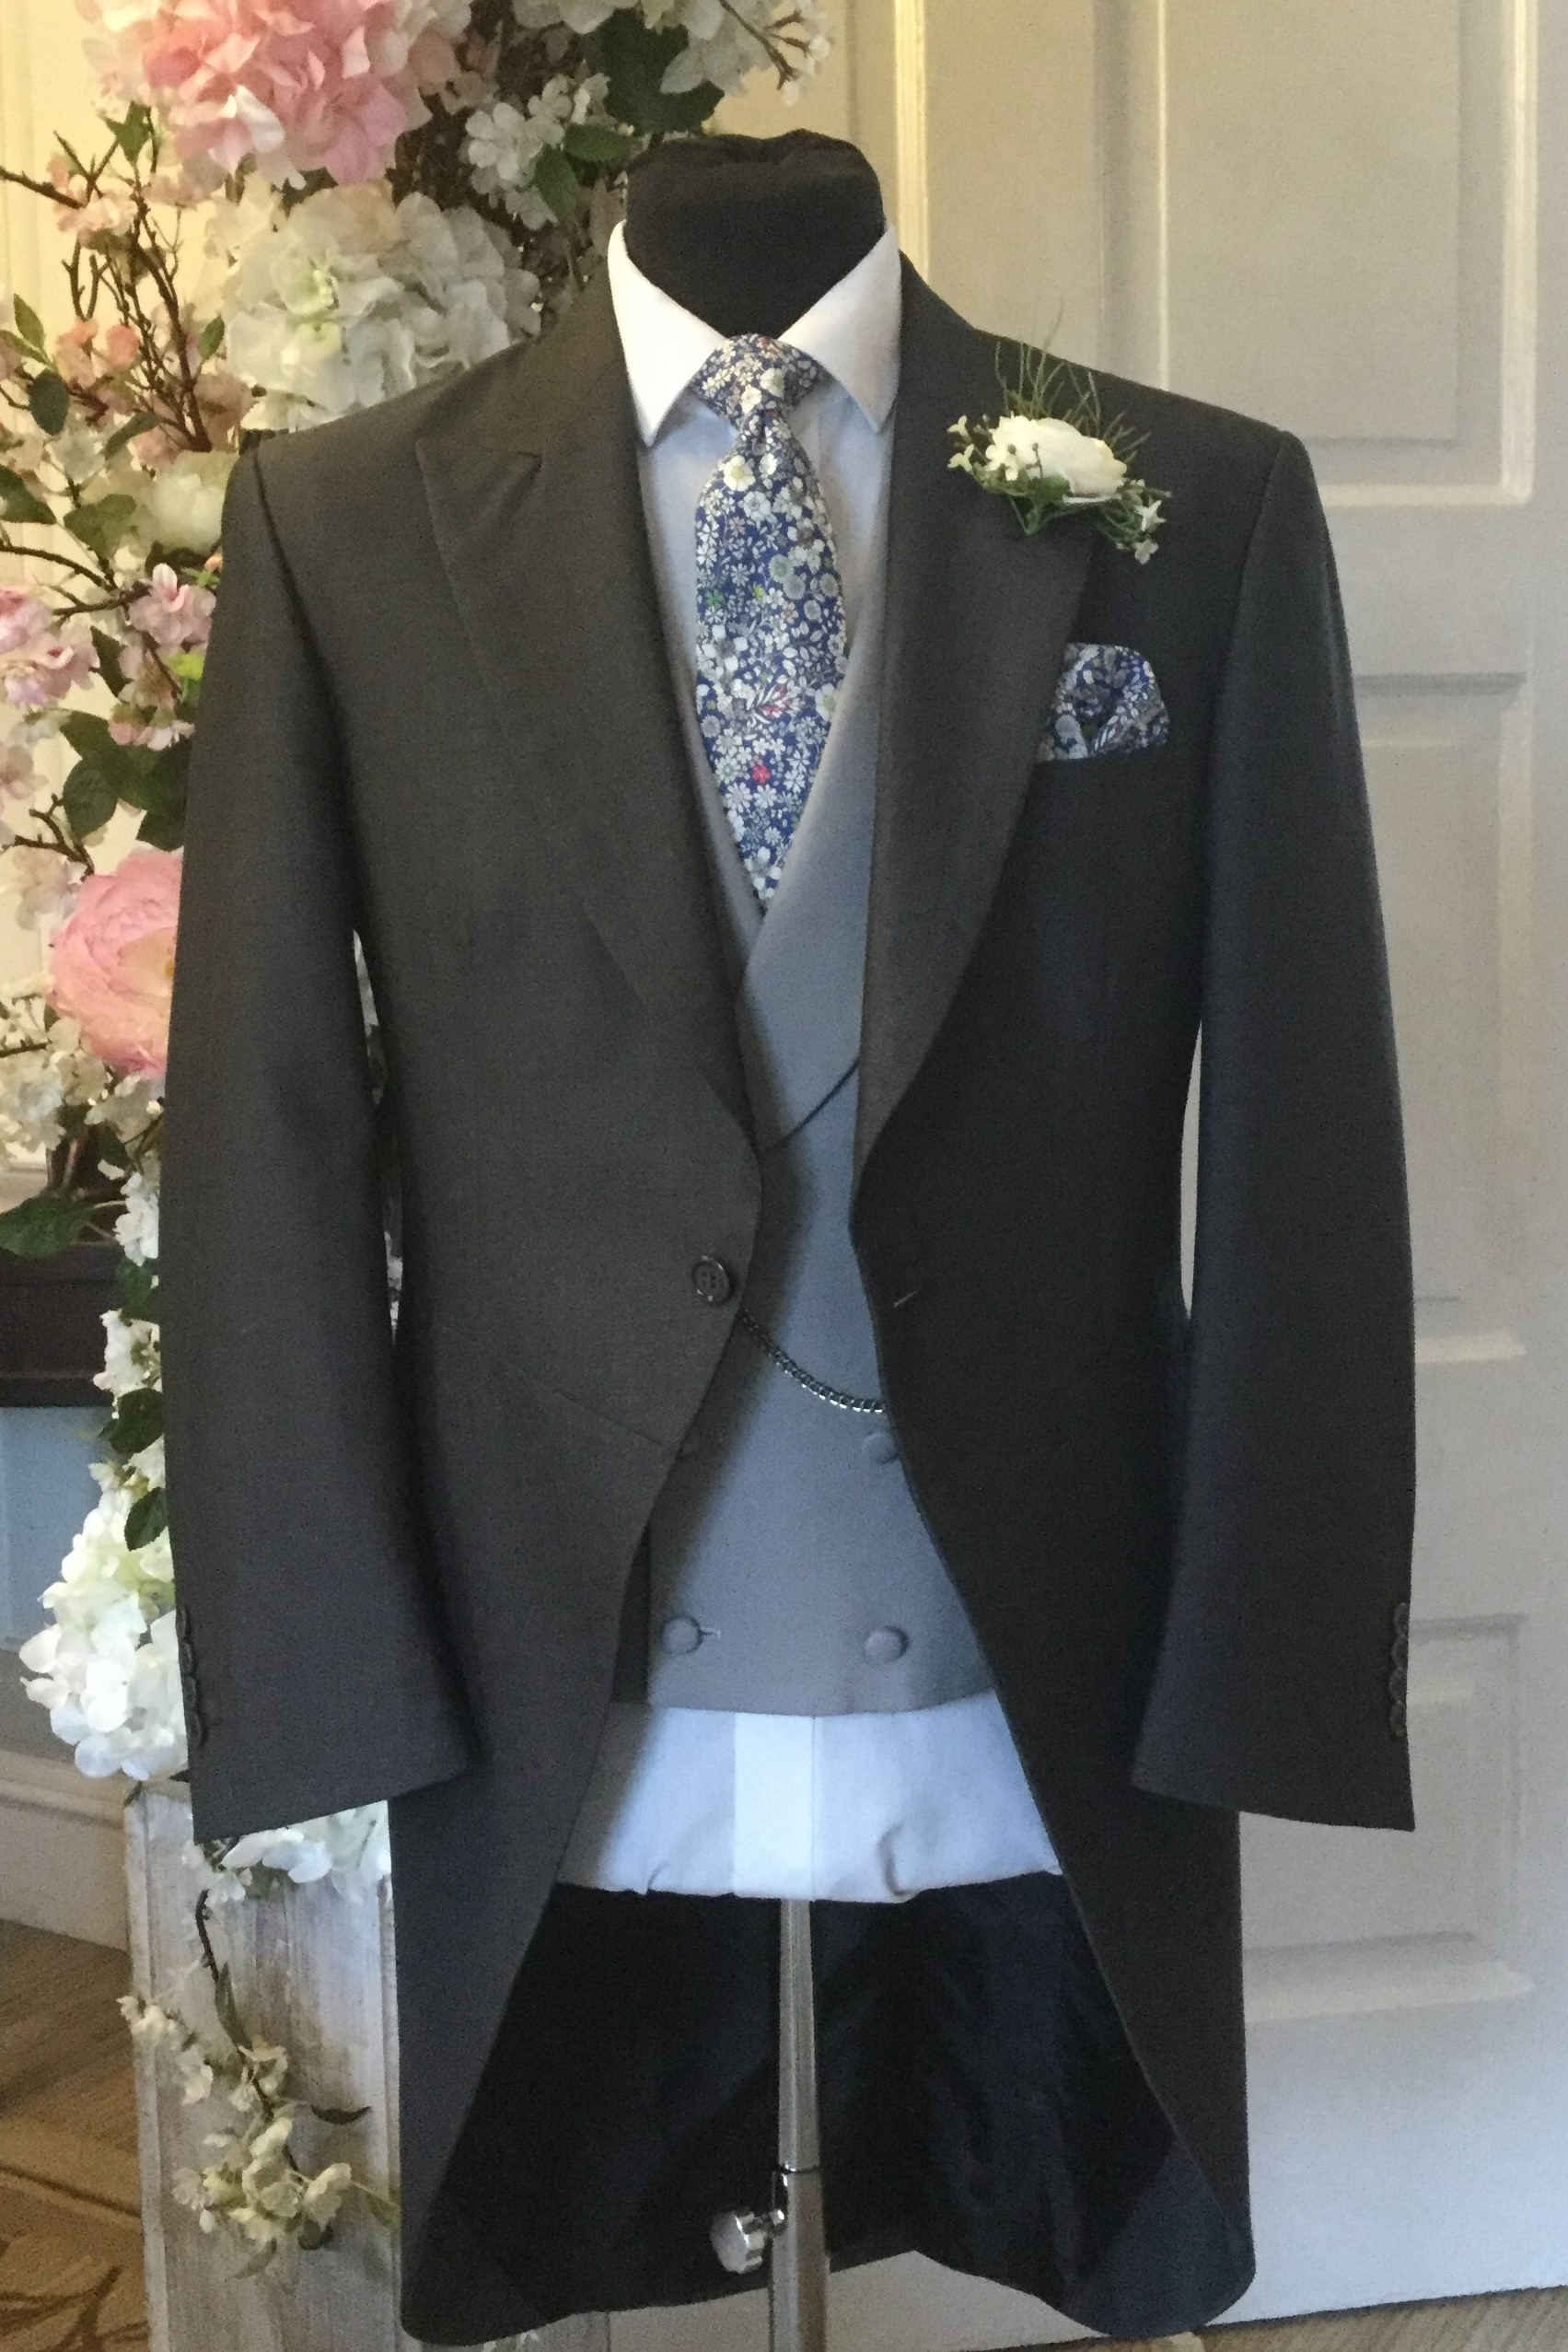 Charcoal Mohair Wedding Morning Suit Hire with Liberty Tie by Black Tie Menswear